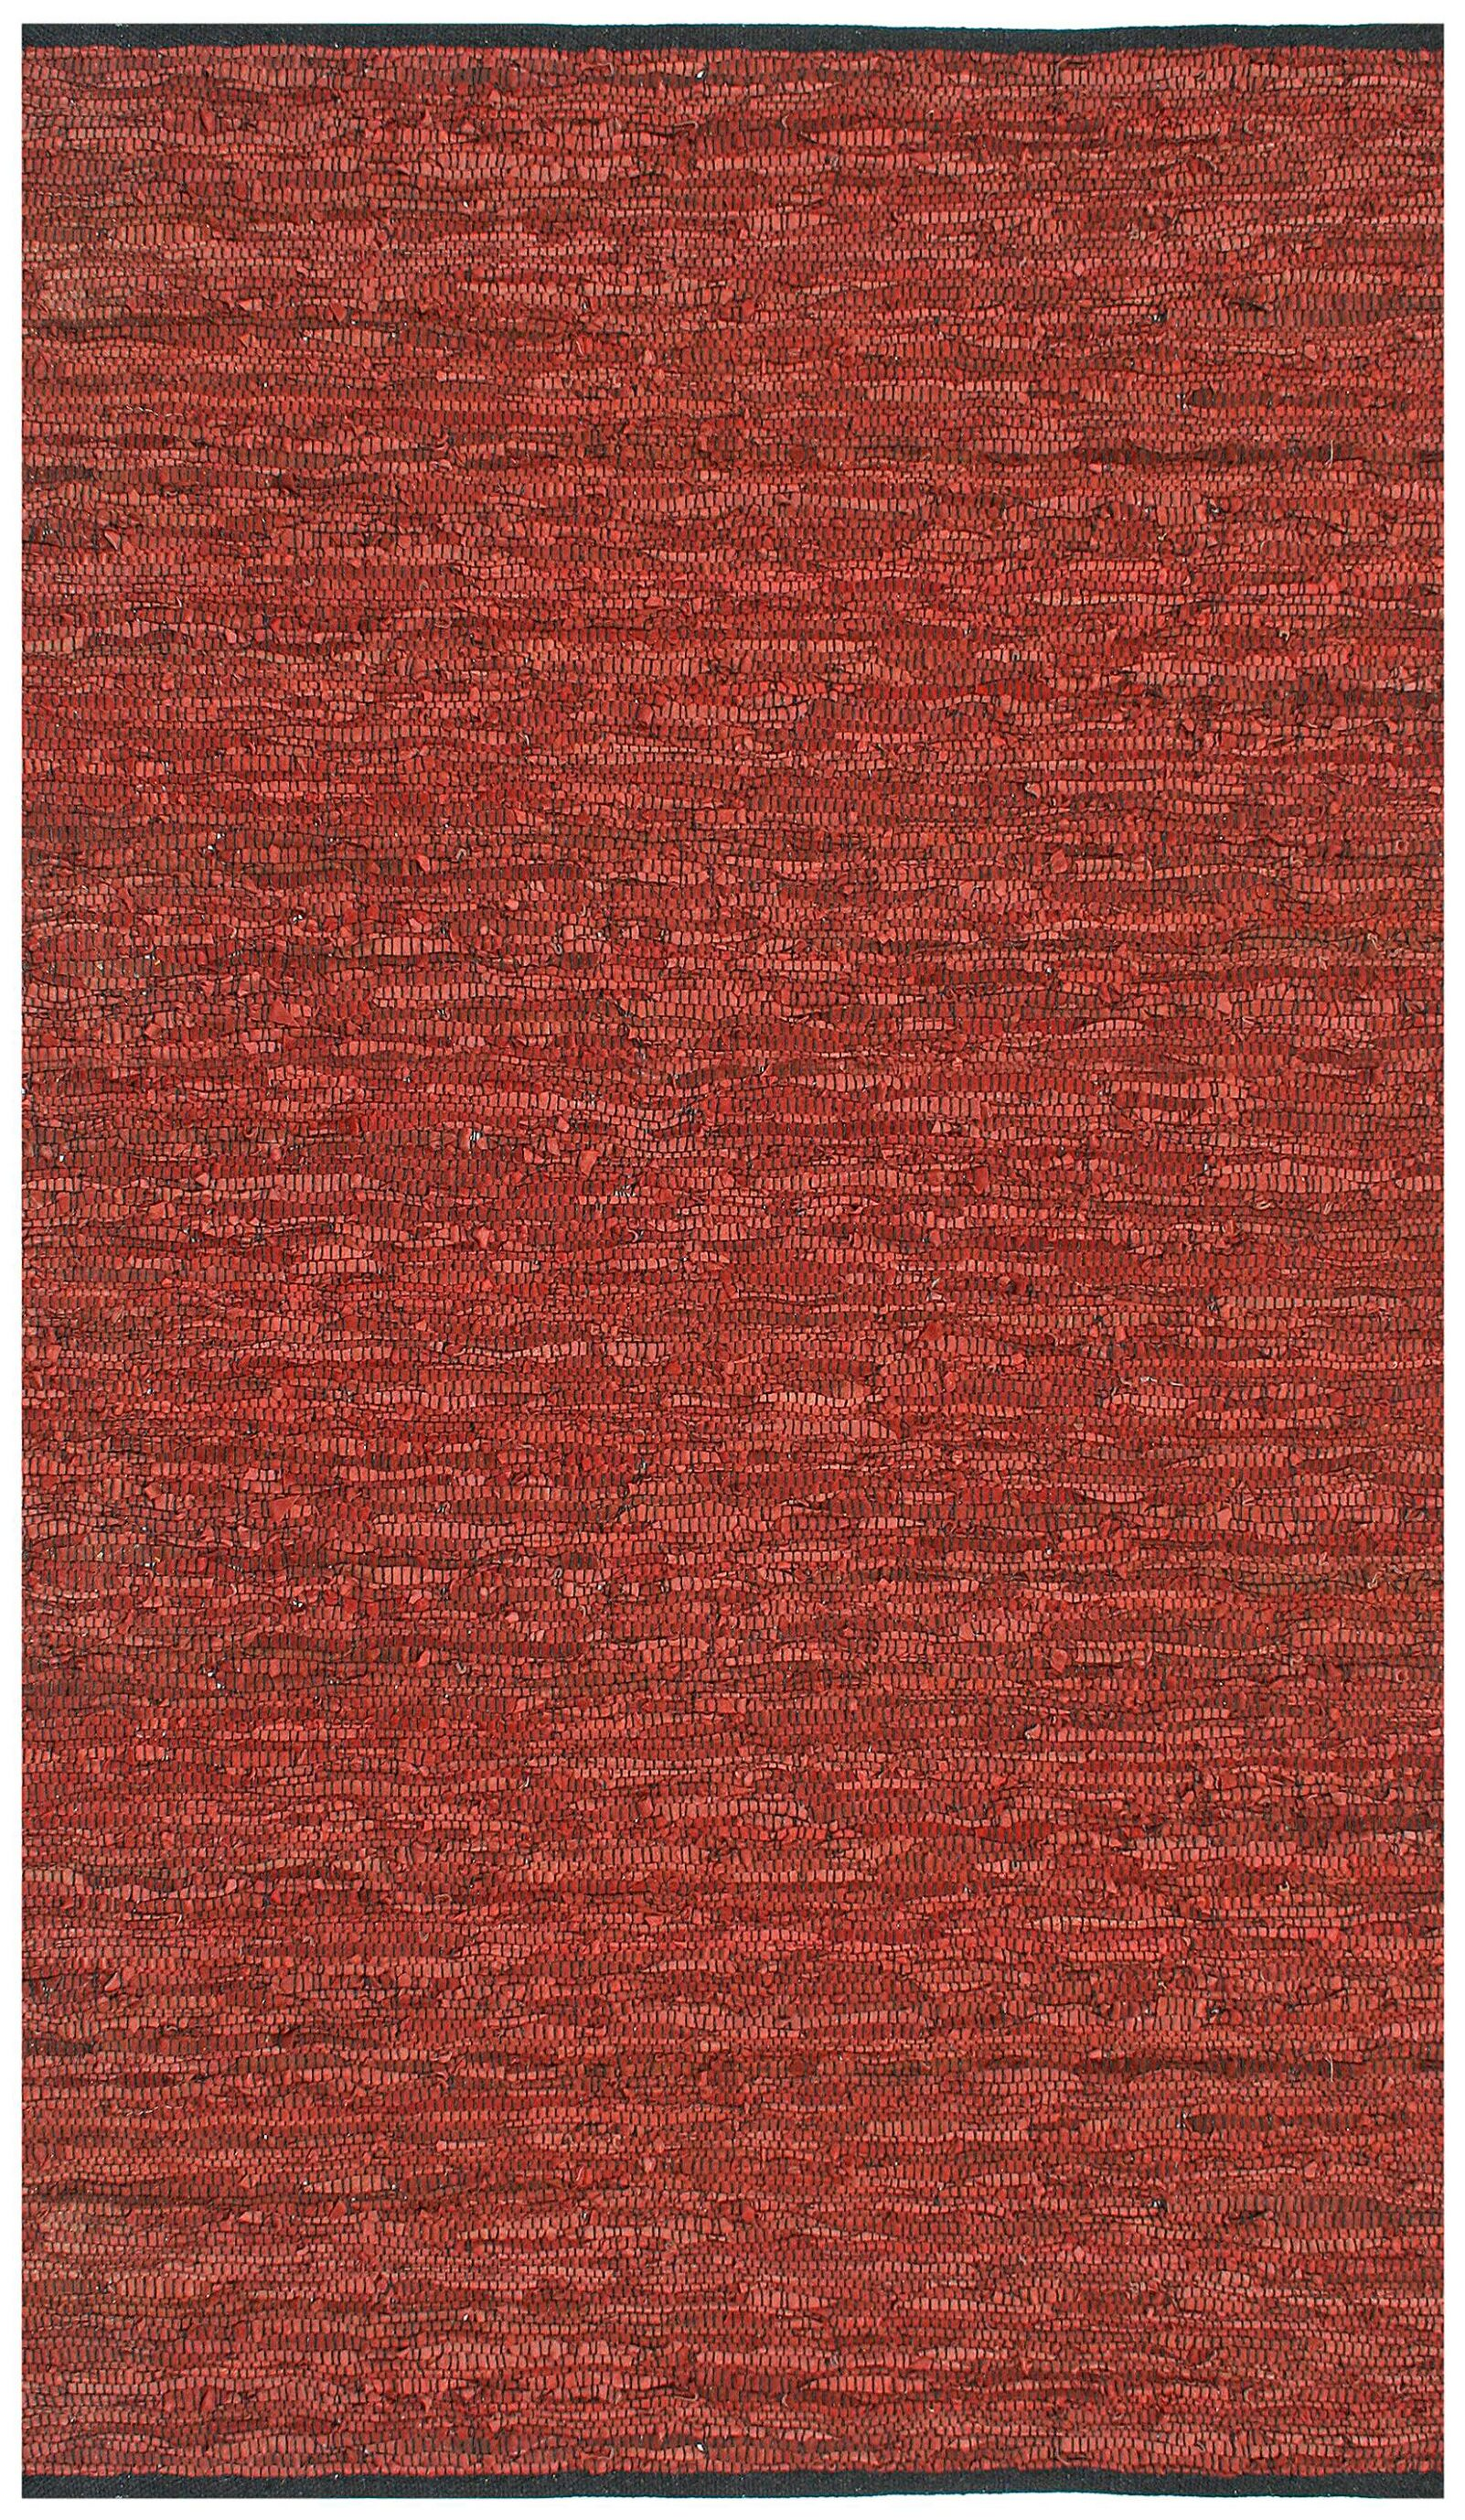 Sandford Leather Chindi Copper Area Rug Rug Size: 5' x 8'